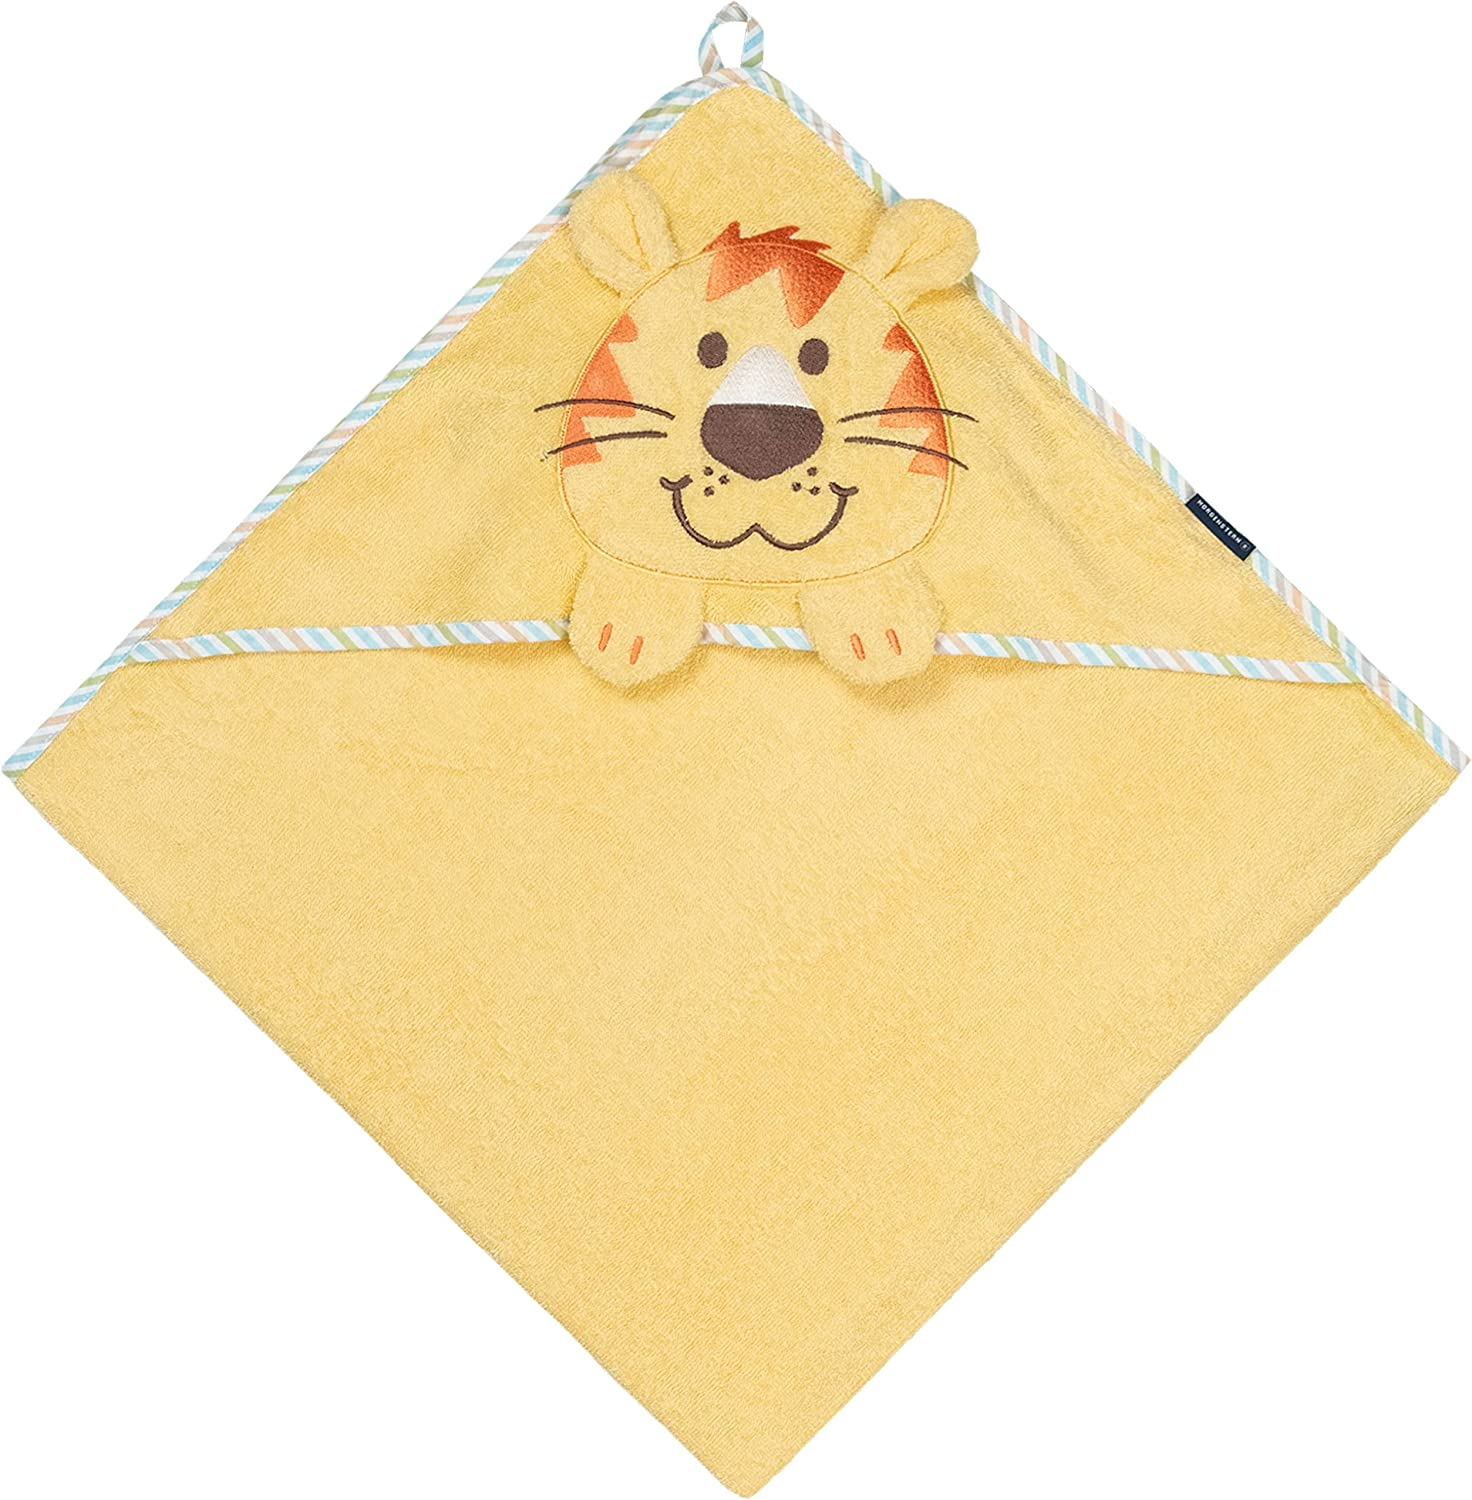 100 x 100 cm Beige Morgenstern Children Hooded Towel with Donkey Embroidery 39 x 39